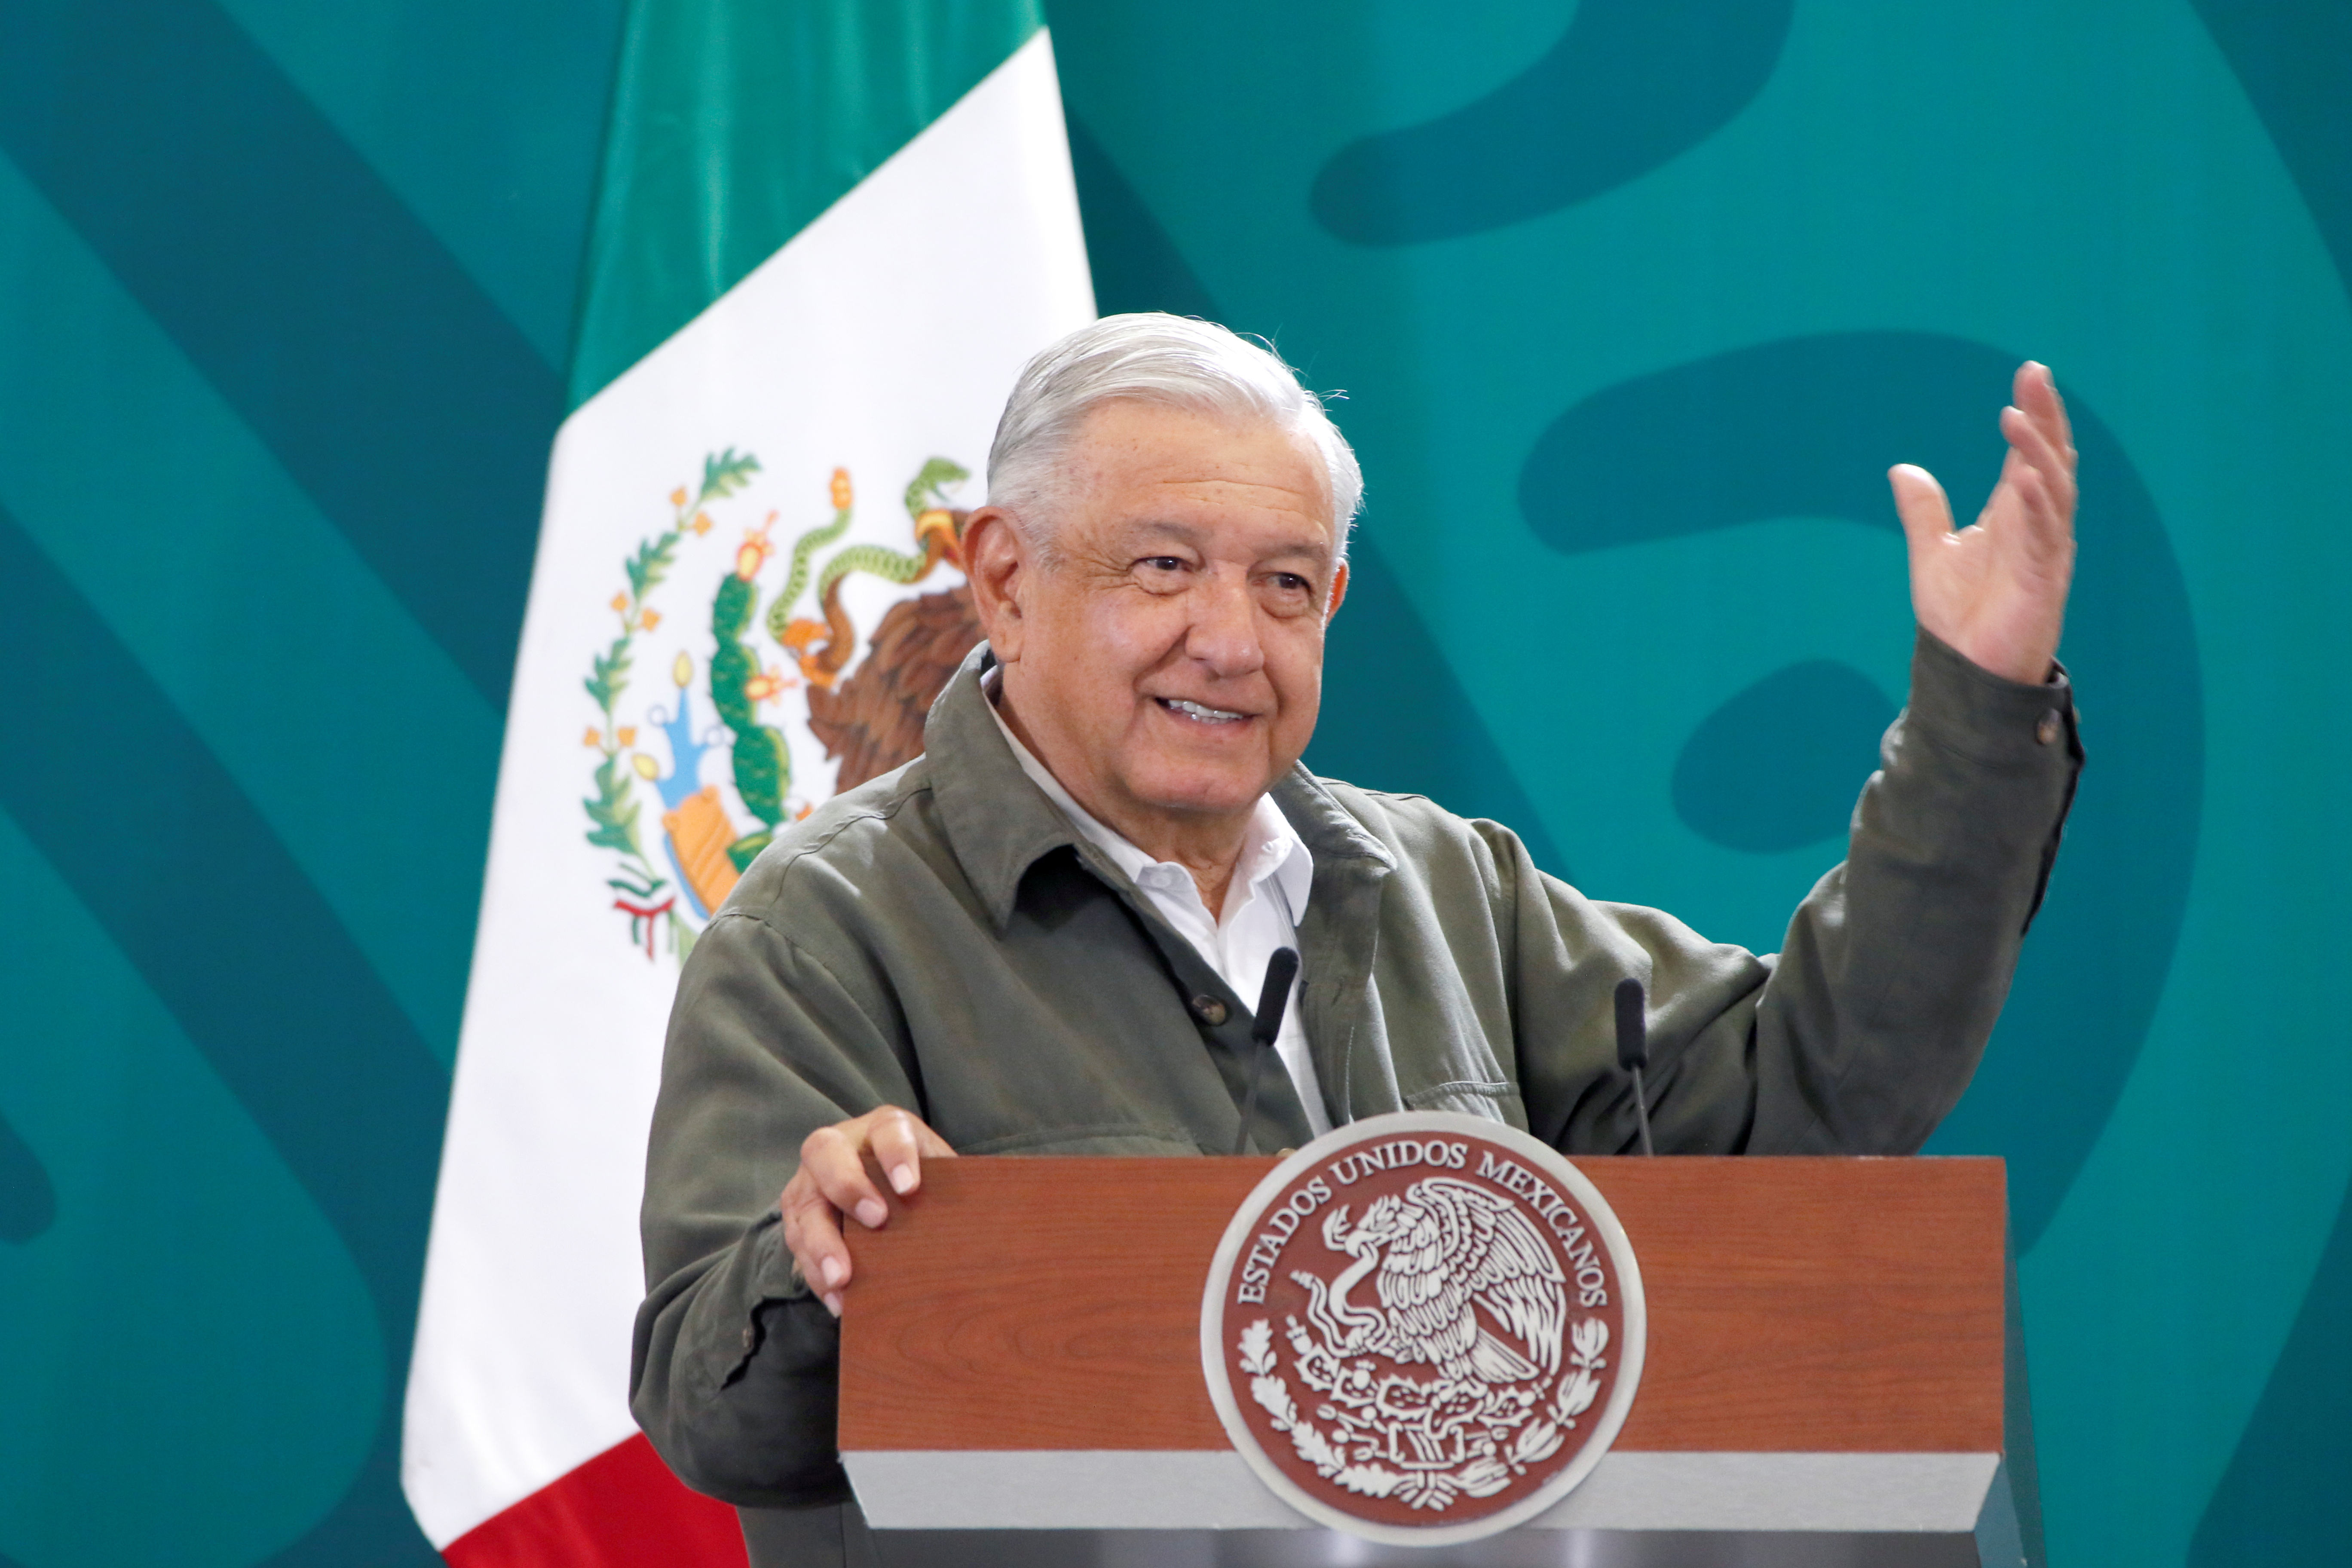 Mexico's President Andres Manuel Lopez Obrador gestures during a news conference as he proposes an electricity reform to Congress seeking to boost the role of the state power utility, in Cuernavaca, Mexico October 1, 2021. Mexico's Presidency/Handout via REUTERS/Files